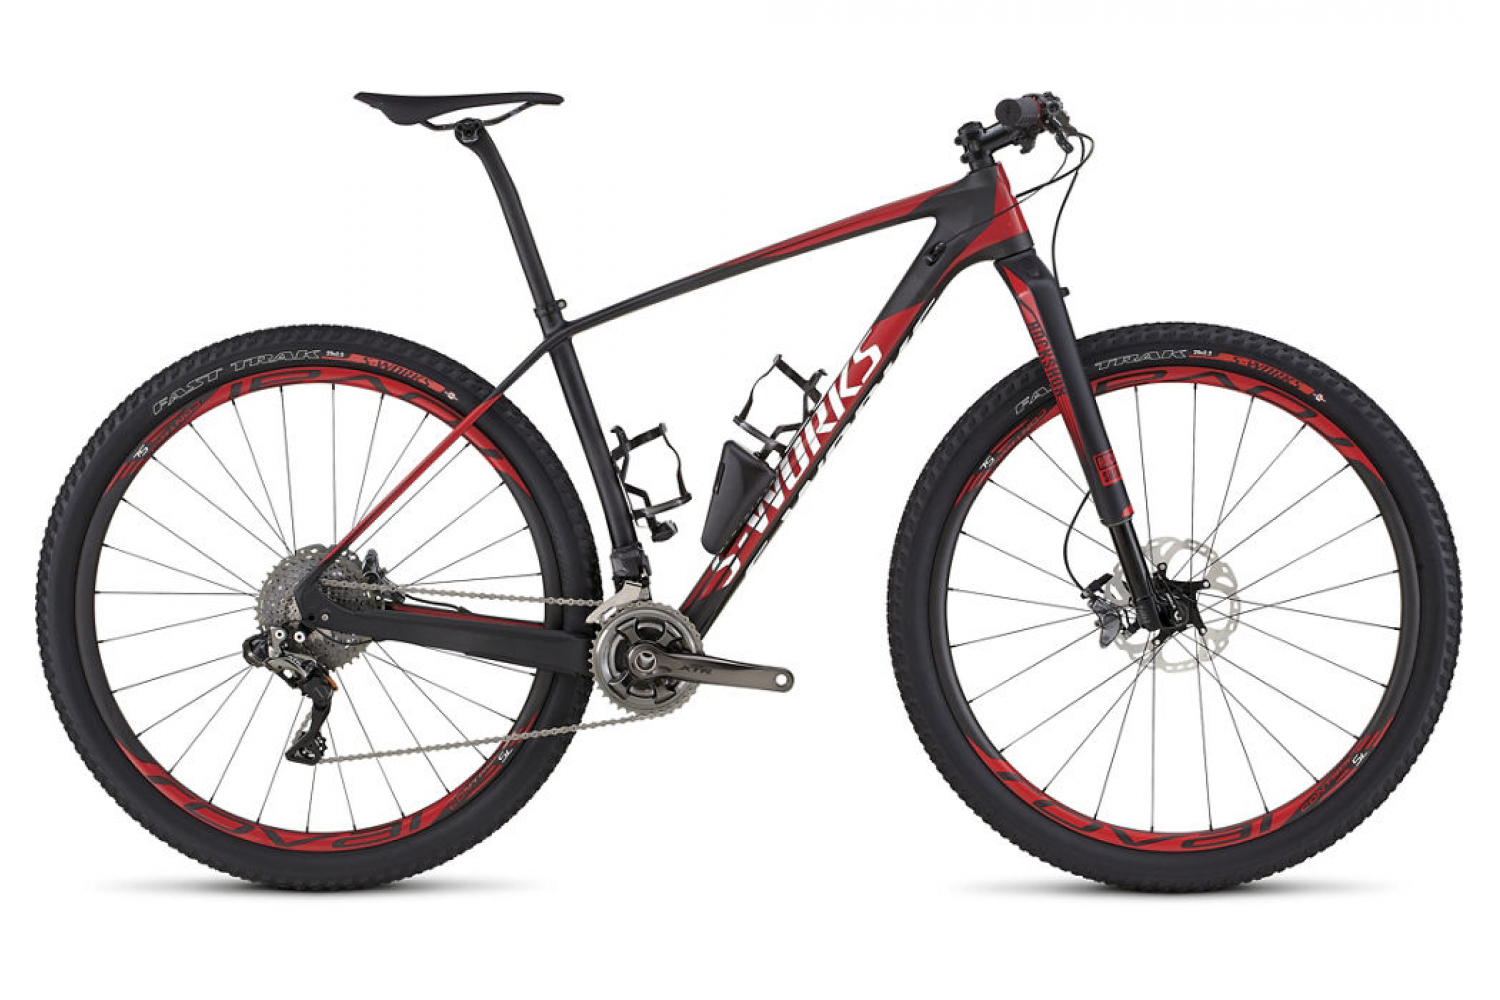 S-WORKS горные велосипеды Specialized S-Works Stumpjumper 29 2016 Артикул